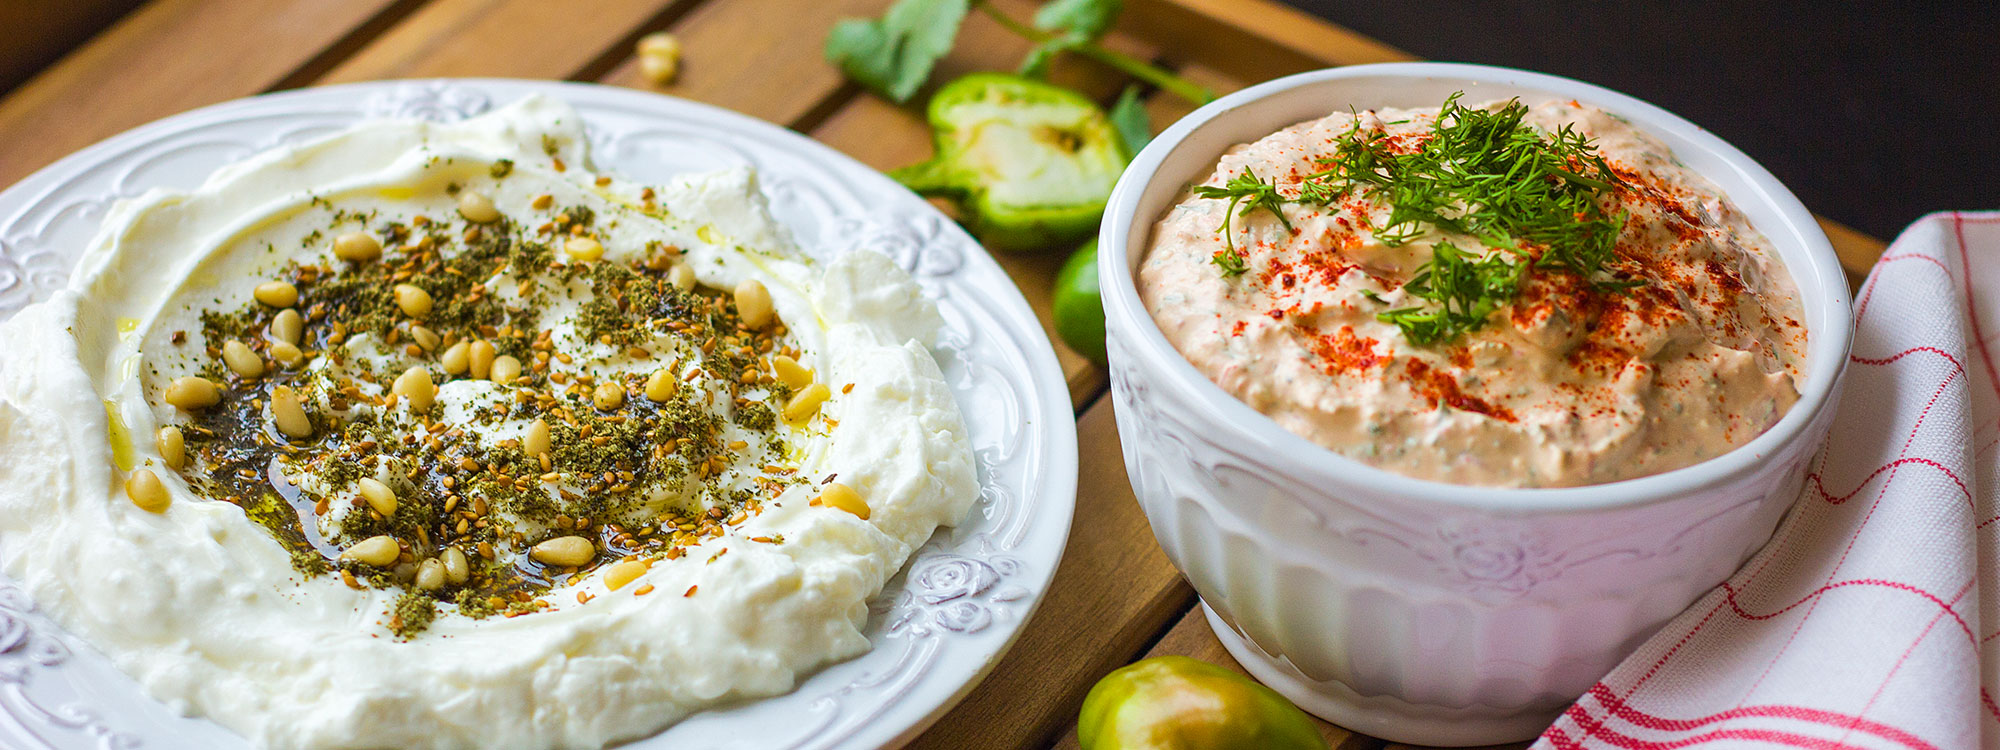 Image shows Homemade Labneh